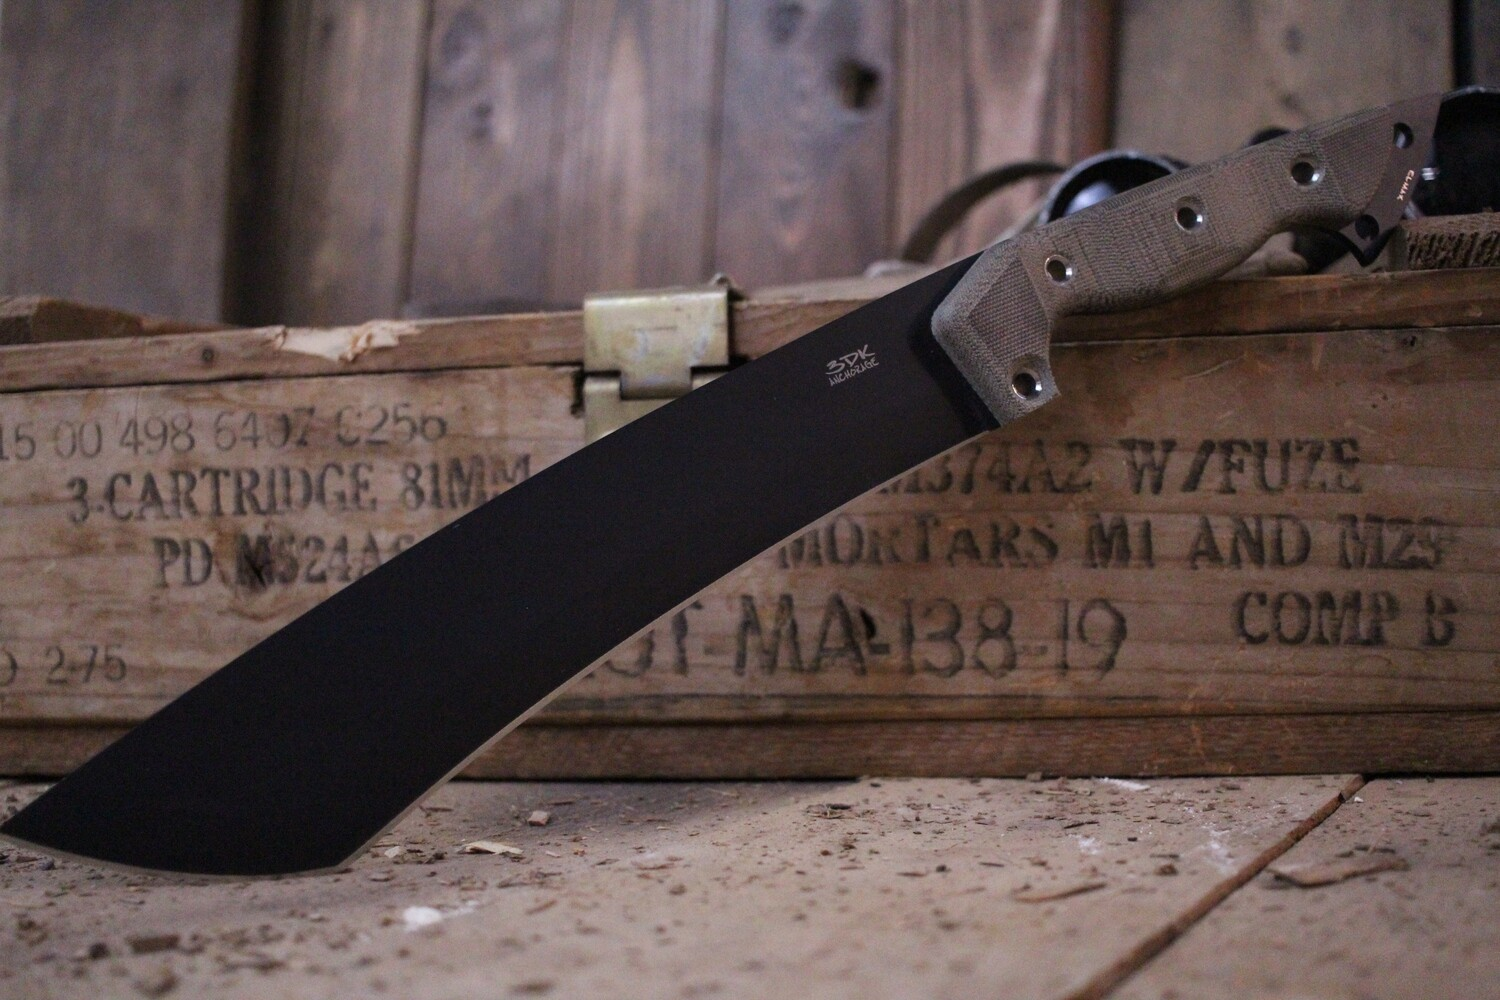 "3DK Severance 10"" Fixed Tanto Point / Black Cerakote K110 Blade / Scandi Grind / Tan Micarta Handle"